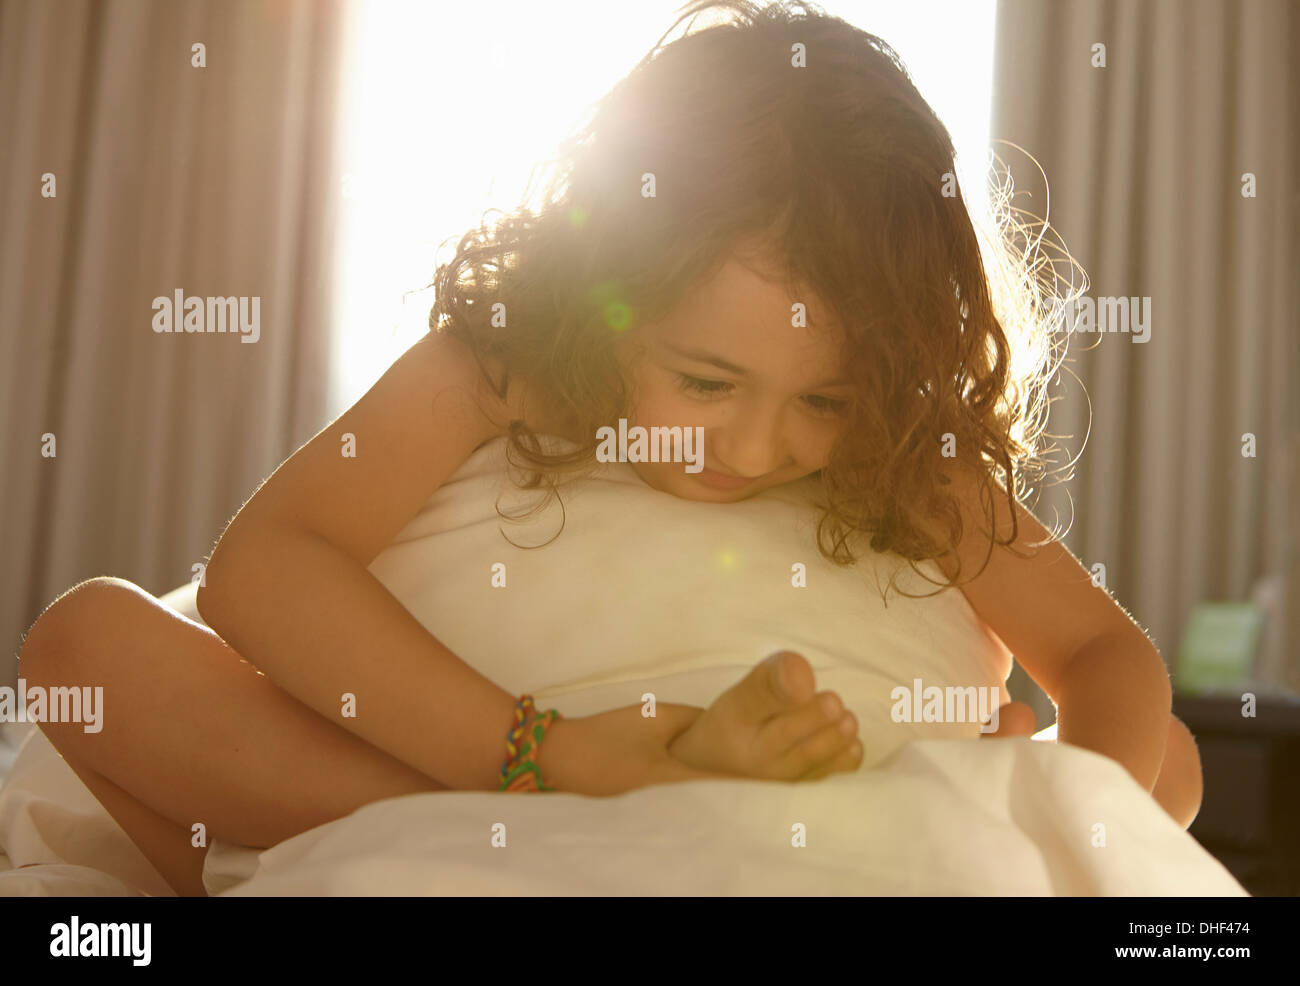 Girl on bed holding foot - Stock Image